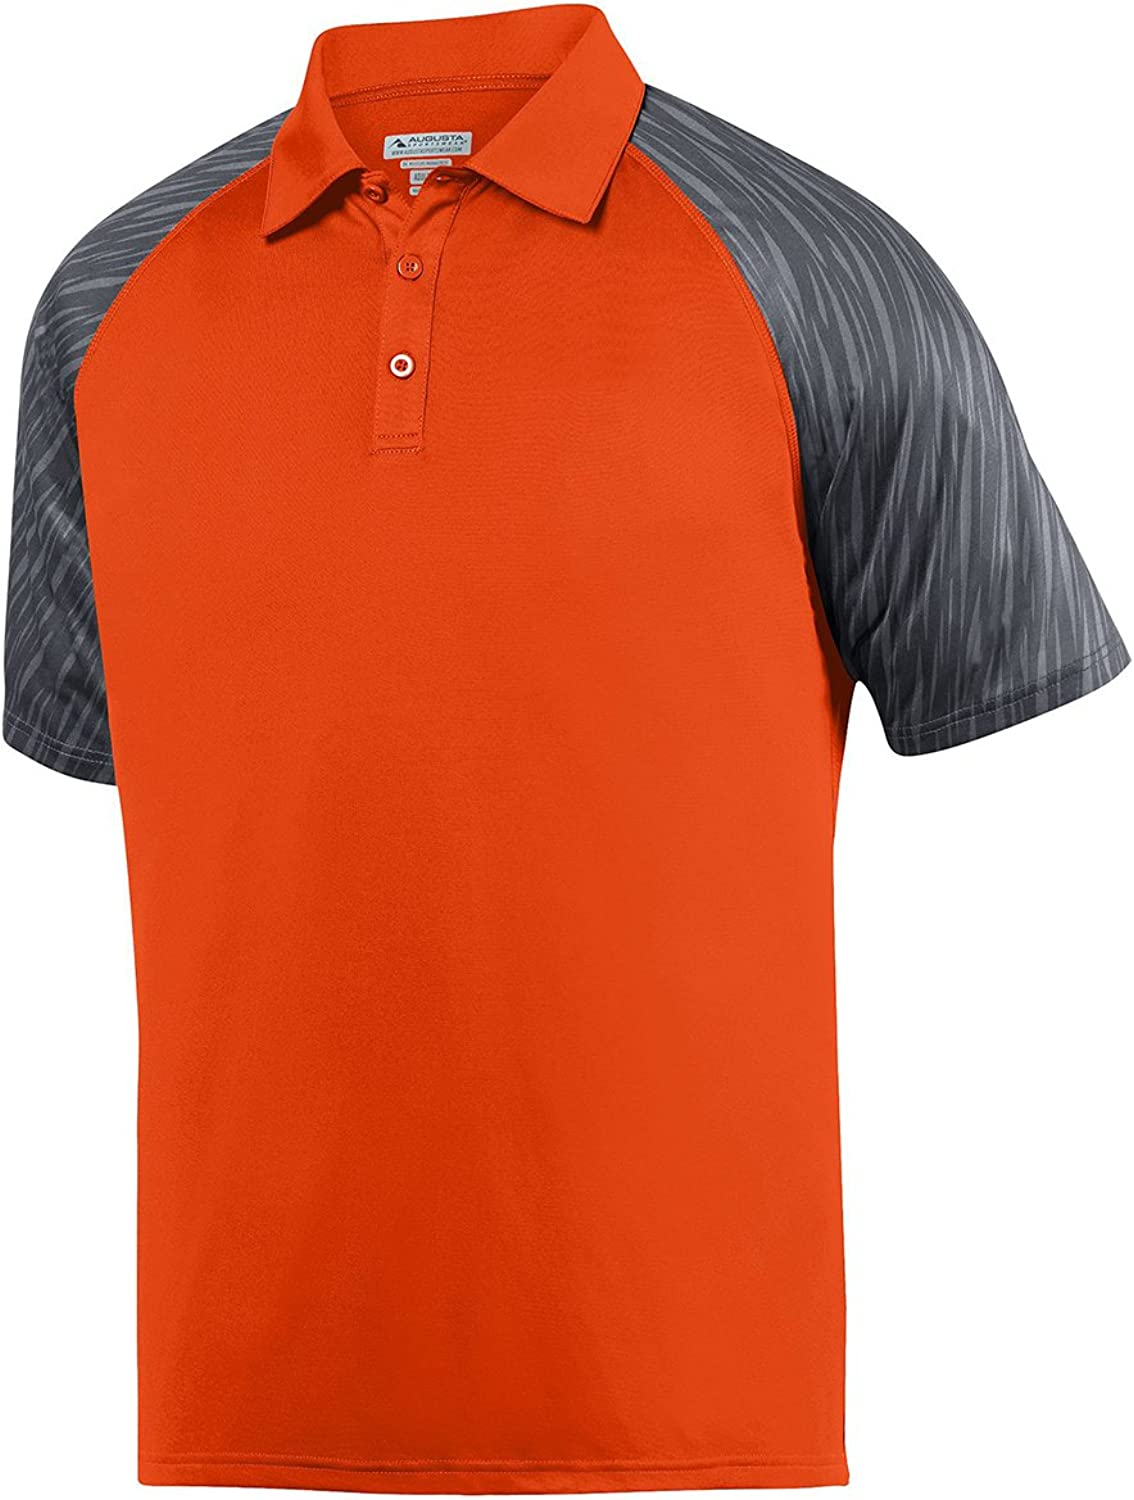 5406 Breaker Sport Shirt orange SLATE L